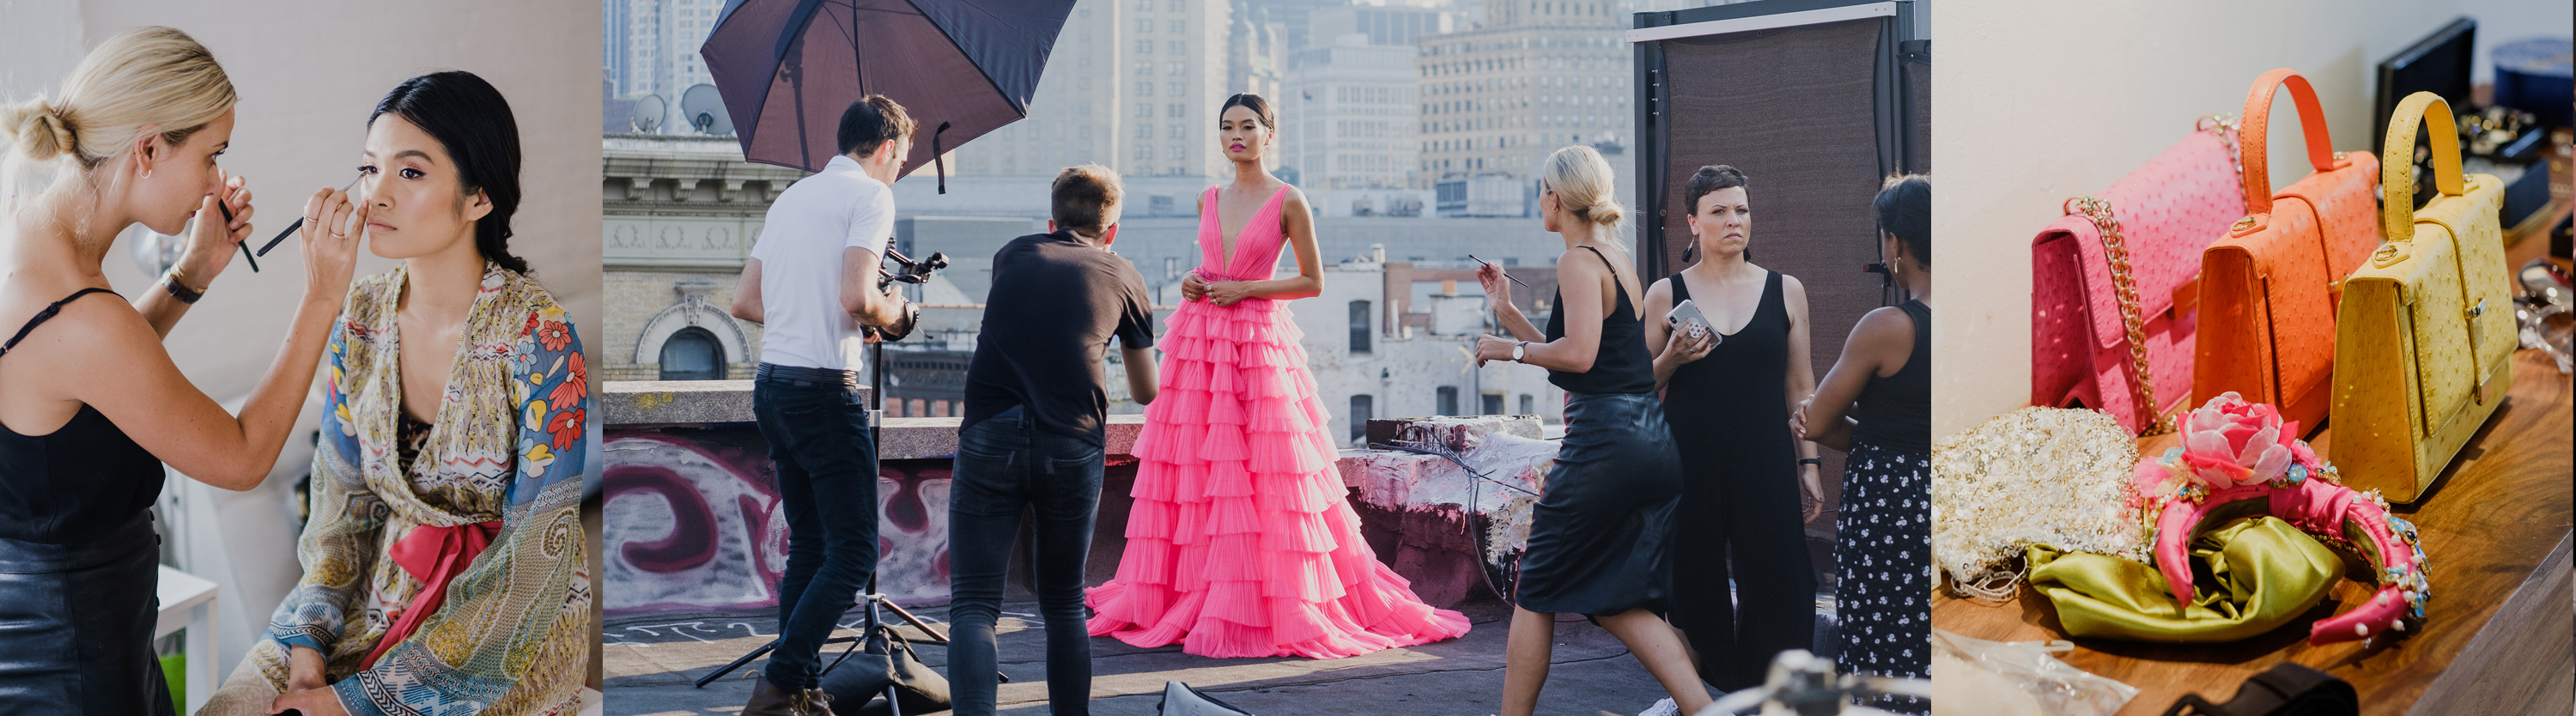 New York Fashion Shoot – Behind the scenes | Exotic Principessa